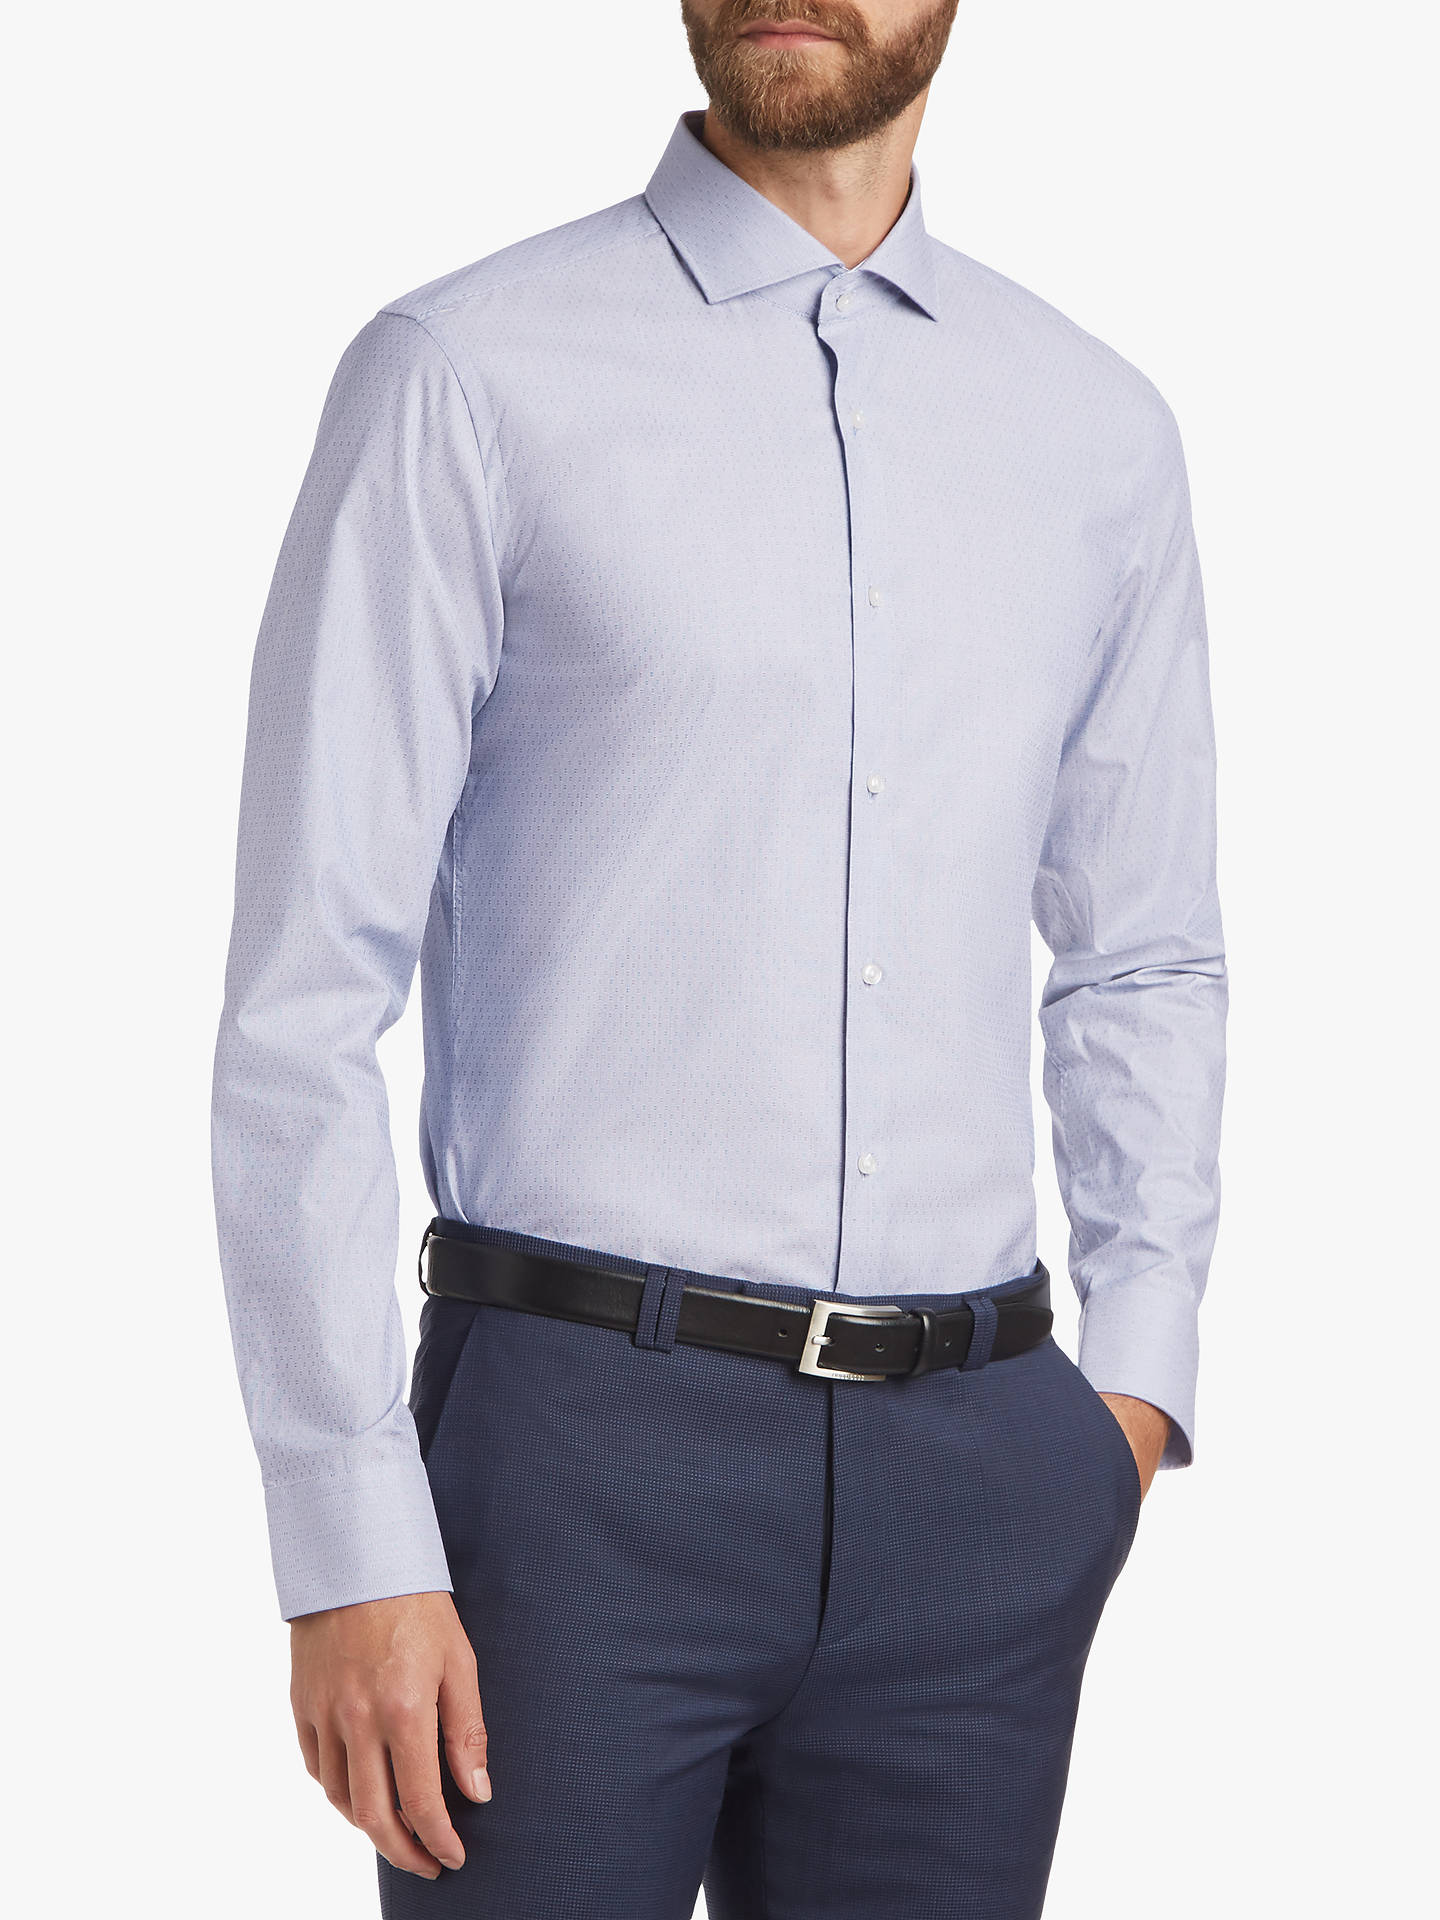 283202264a9 Buy HUGO by Hugo Boss Stretch Dobby Fine Stripe Slim Fit Shirt